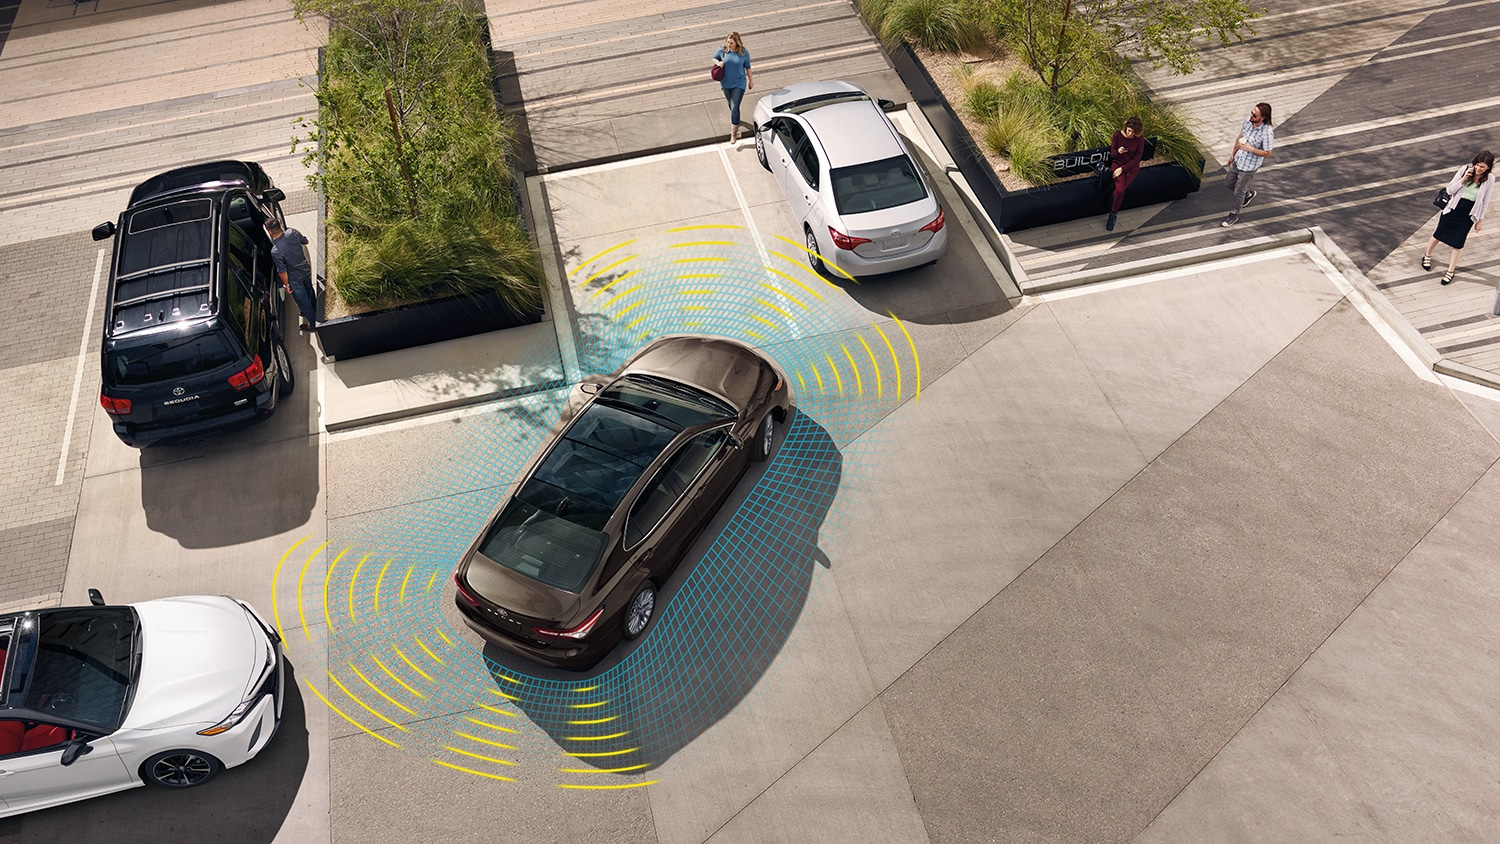 Visualization of the toyota safety sensor in a parking lot